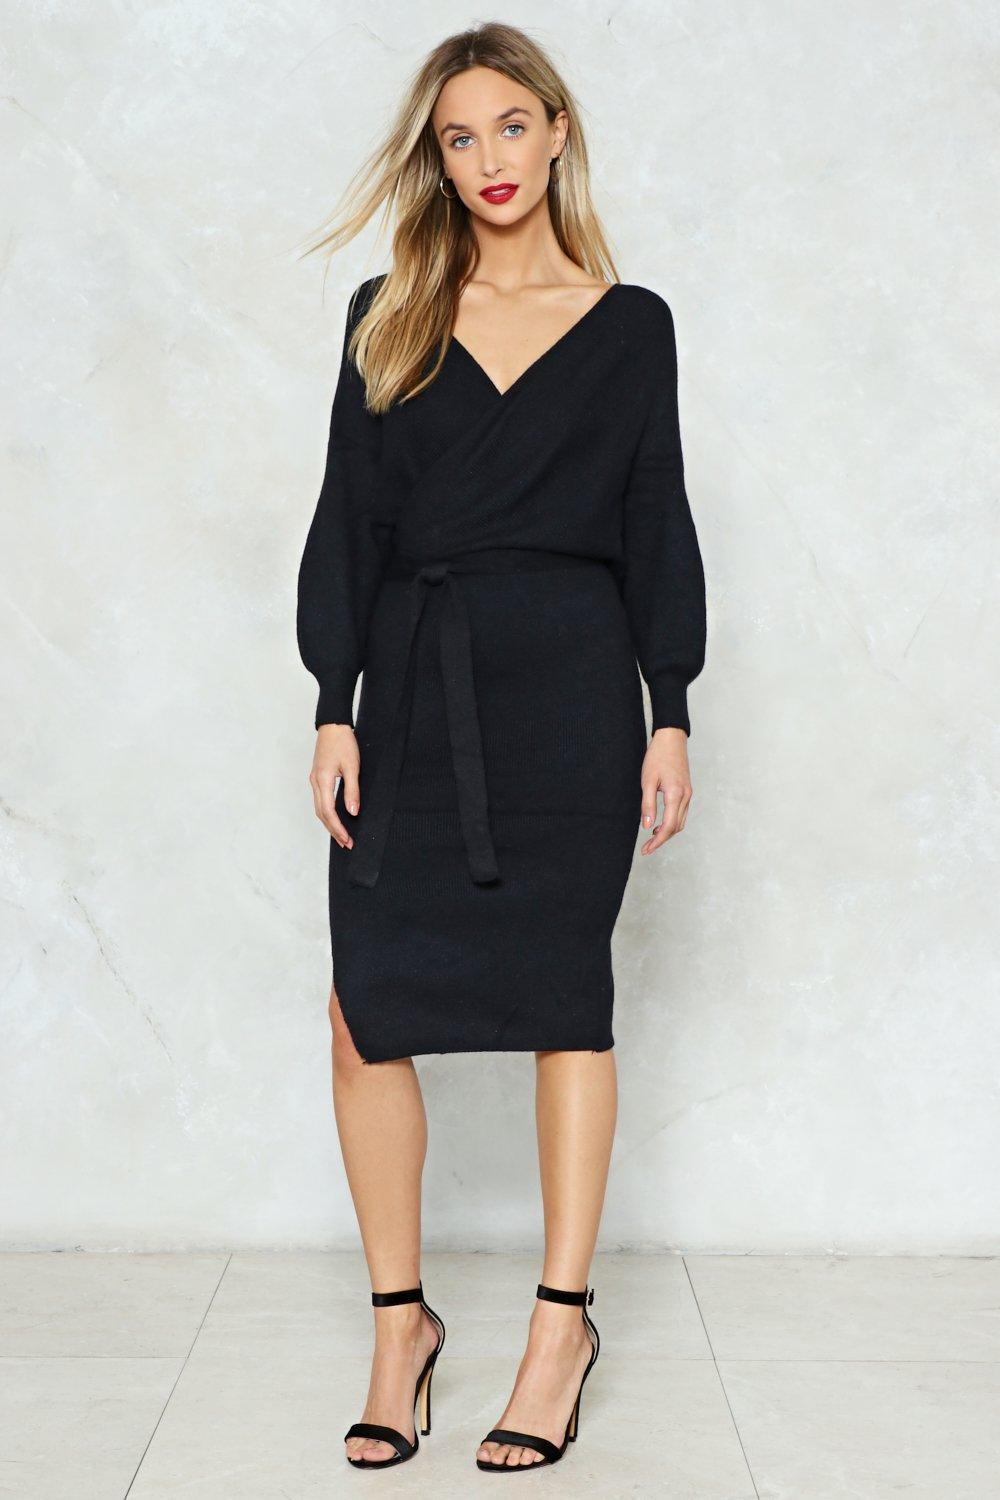 Sweater to go over cocktail dress